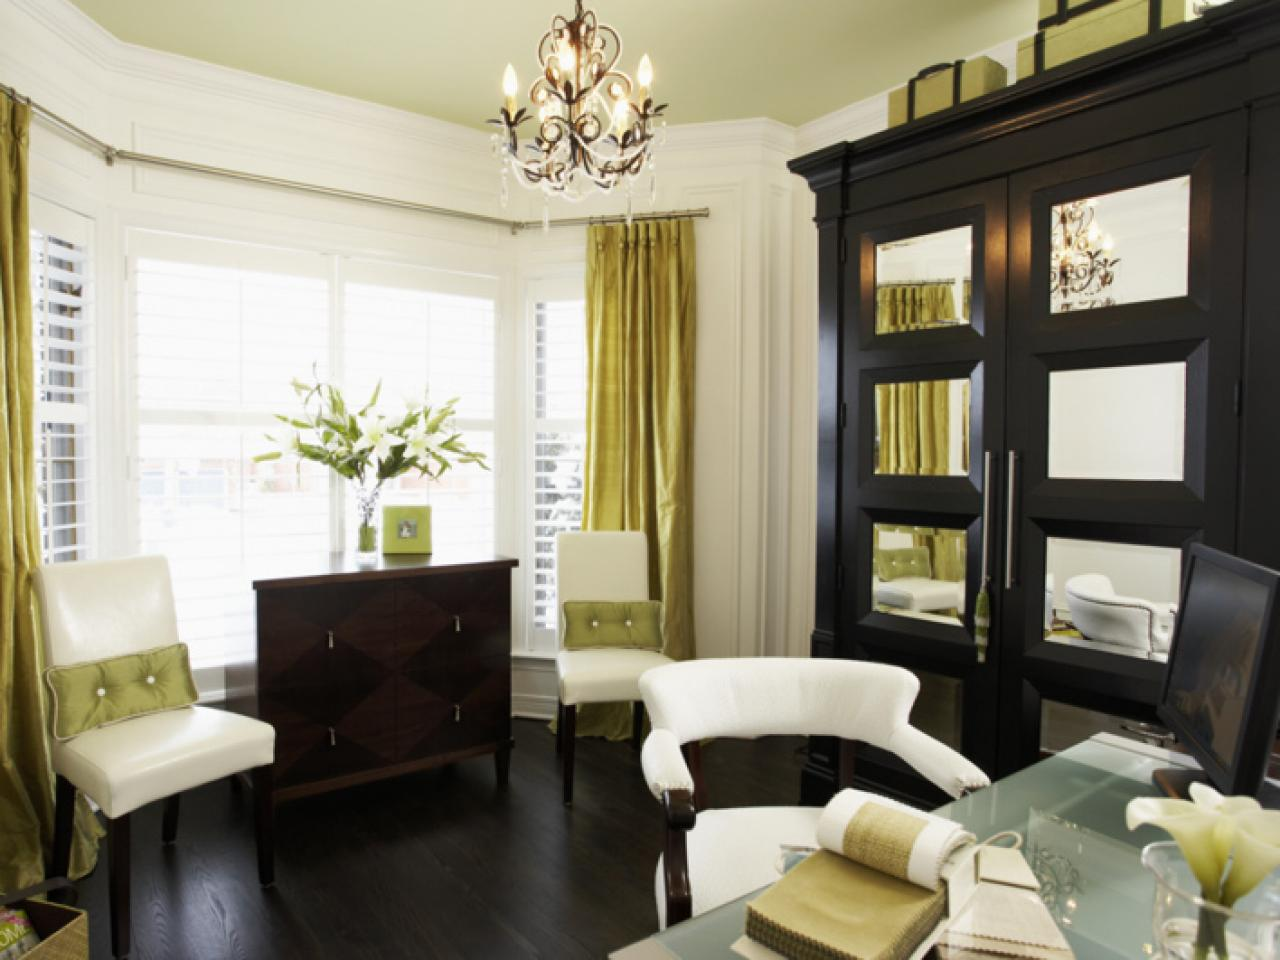 Bay window treatment ideas window treatments ideas for for Living room window blinds